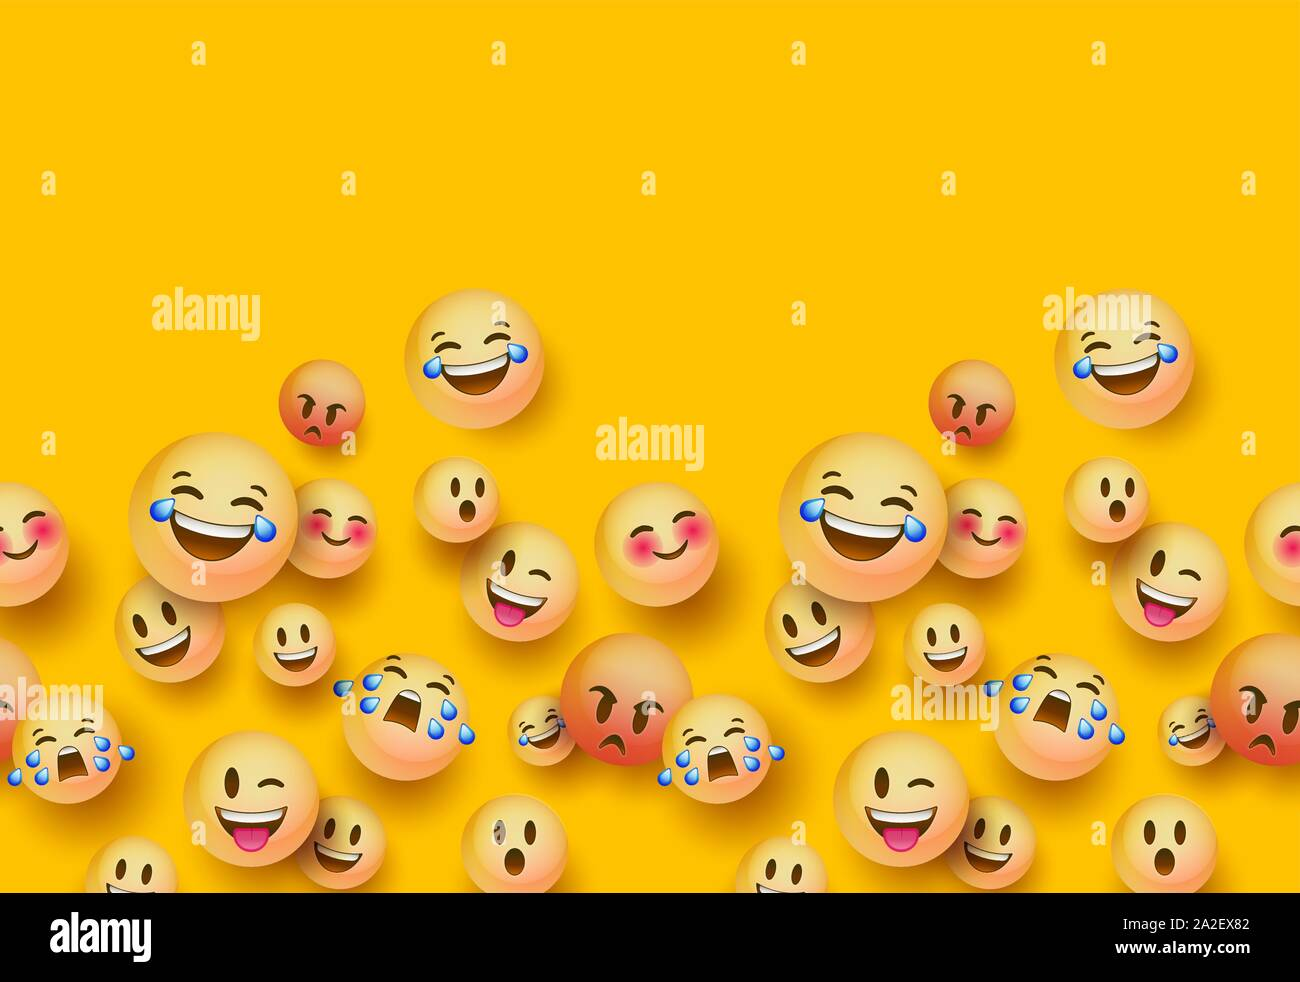 Fun 3d Yellow Emoticon Face Seamless Pattern Background With